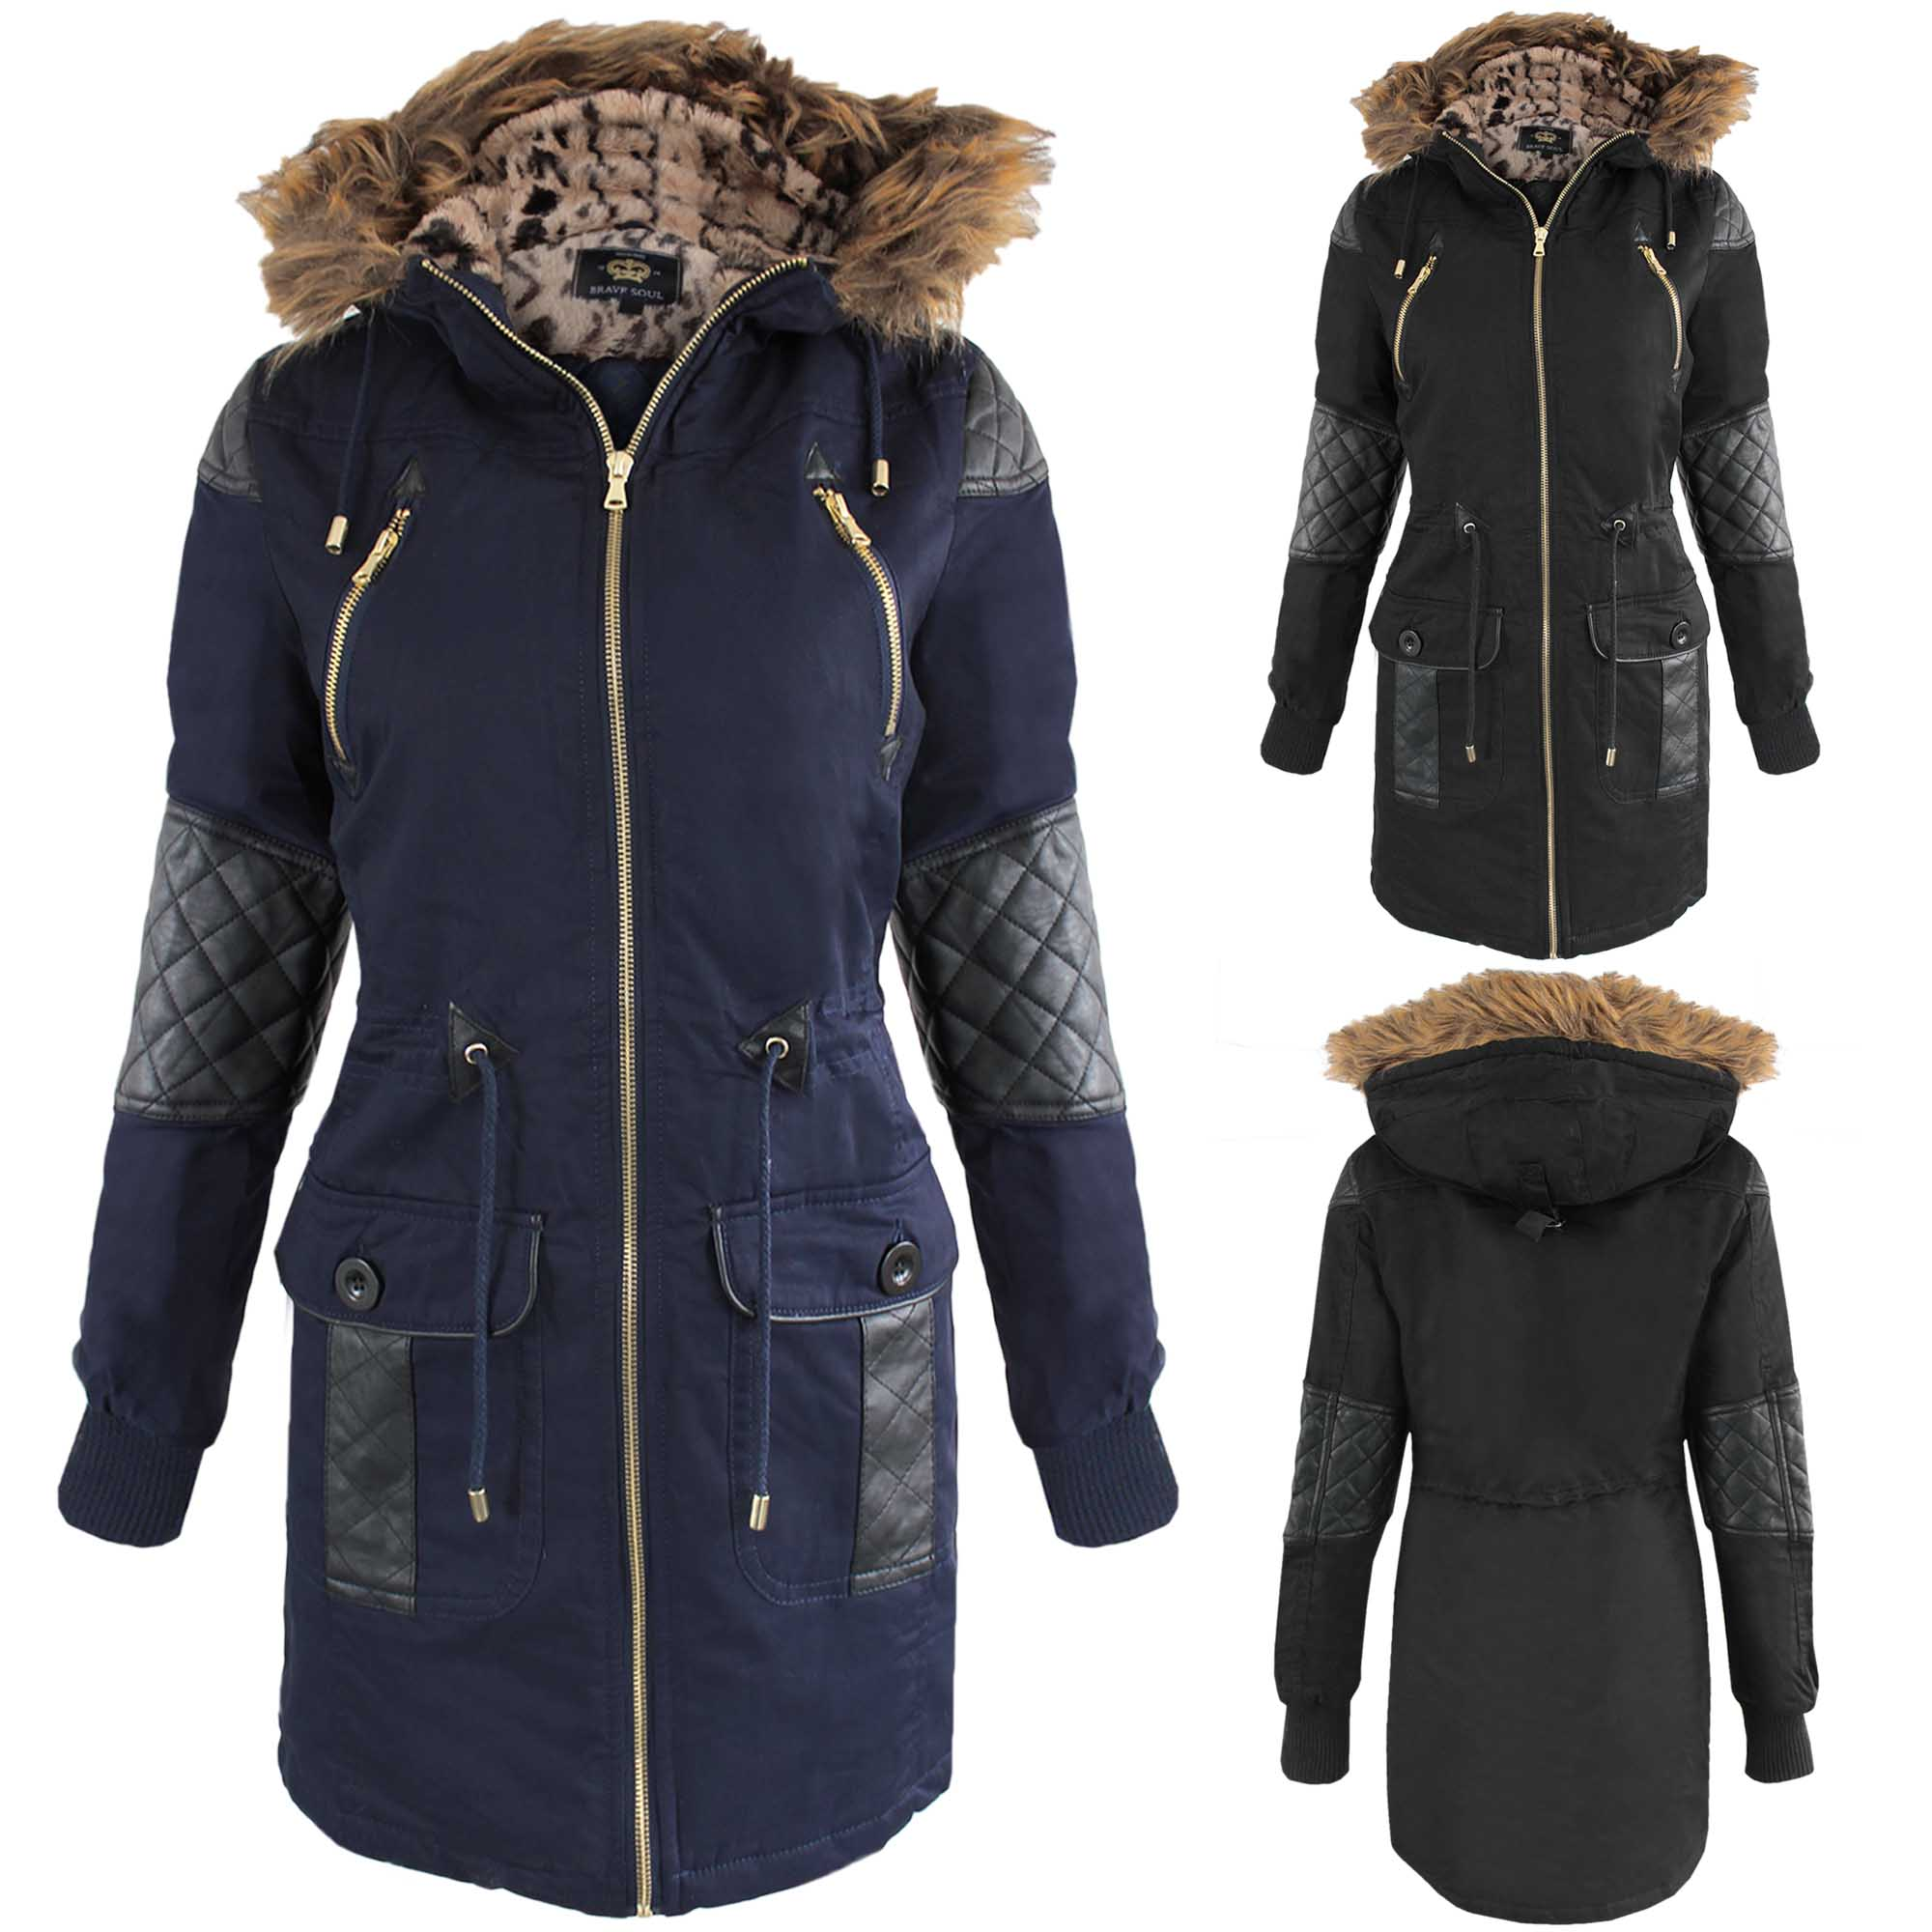 neu damen schwarz pu rand pelzfutter kapuze parka jacke. Black Bedroom Furniture Sets. Home Design Ideas